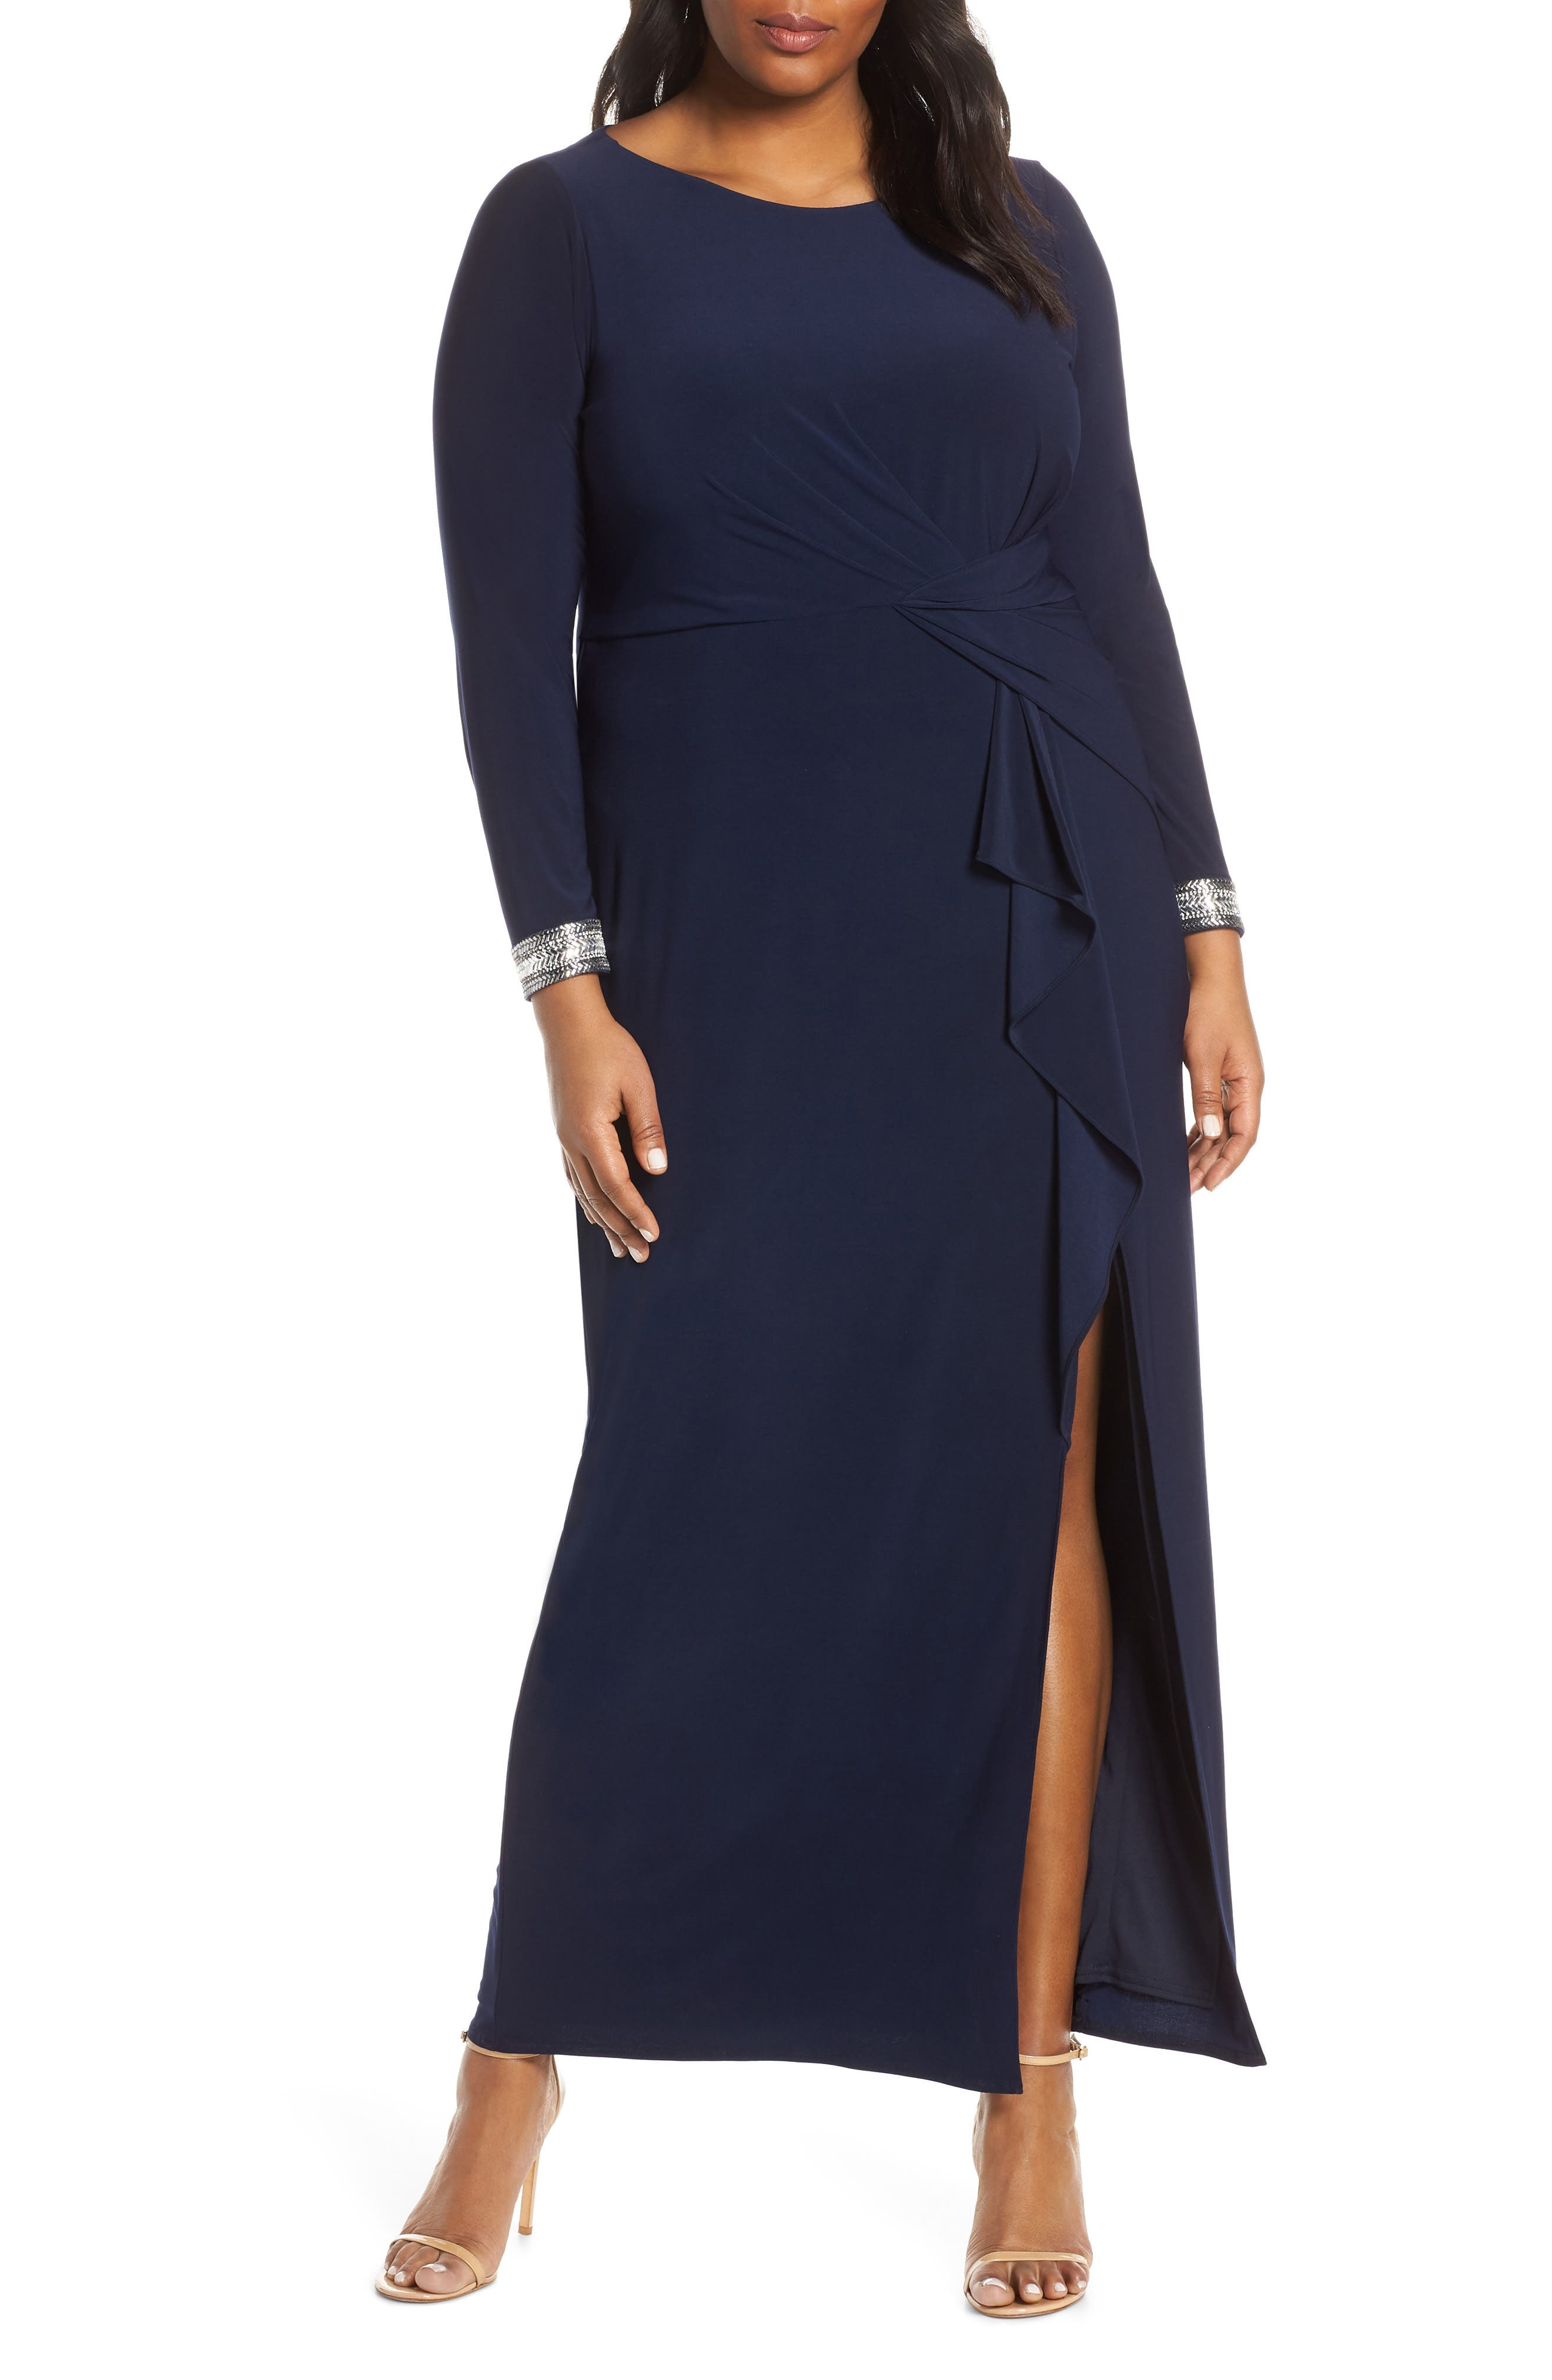 VINCE CAMUTO, Beaded Cuff Ruched Jersey Gown, Main thumbnail 1, color, NAVY